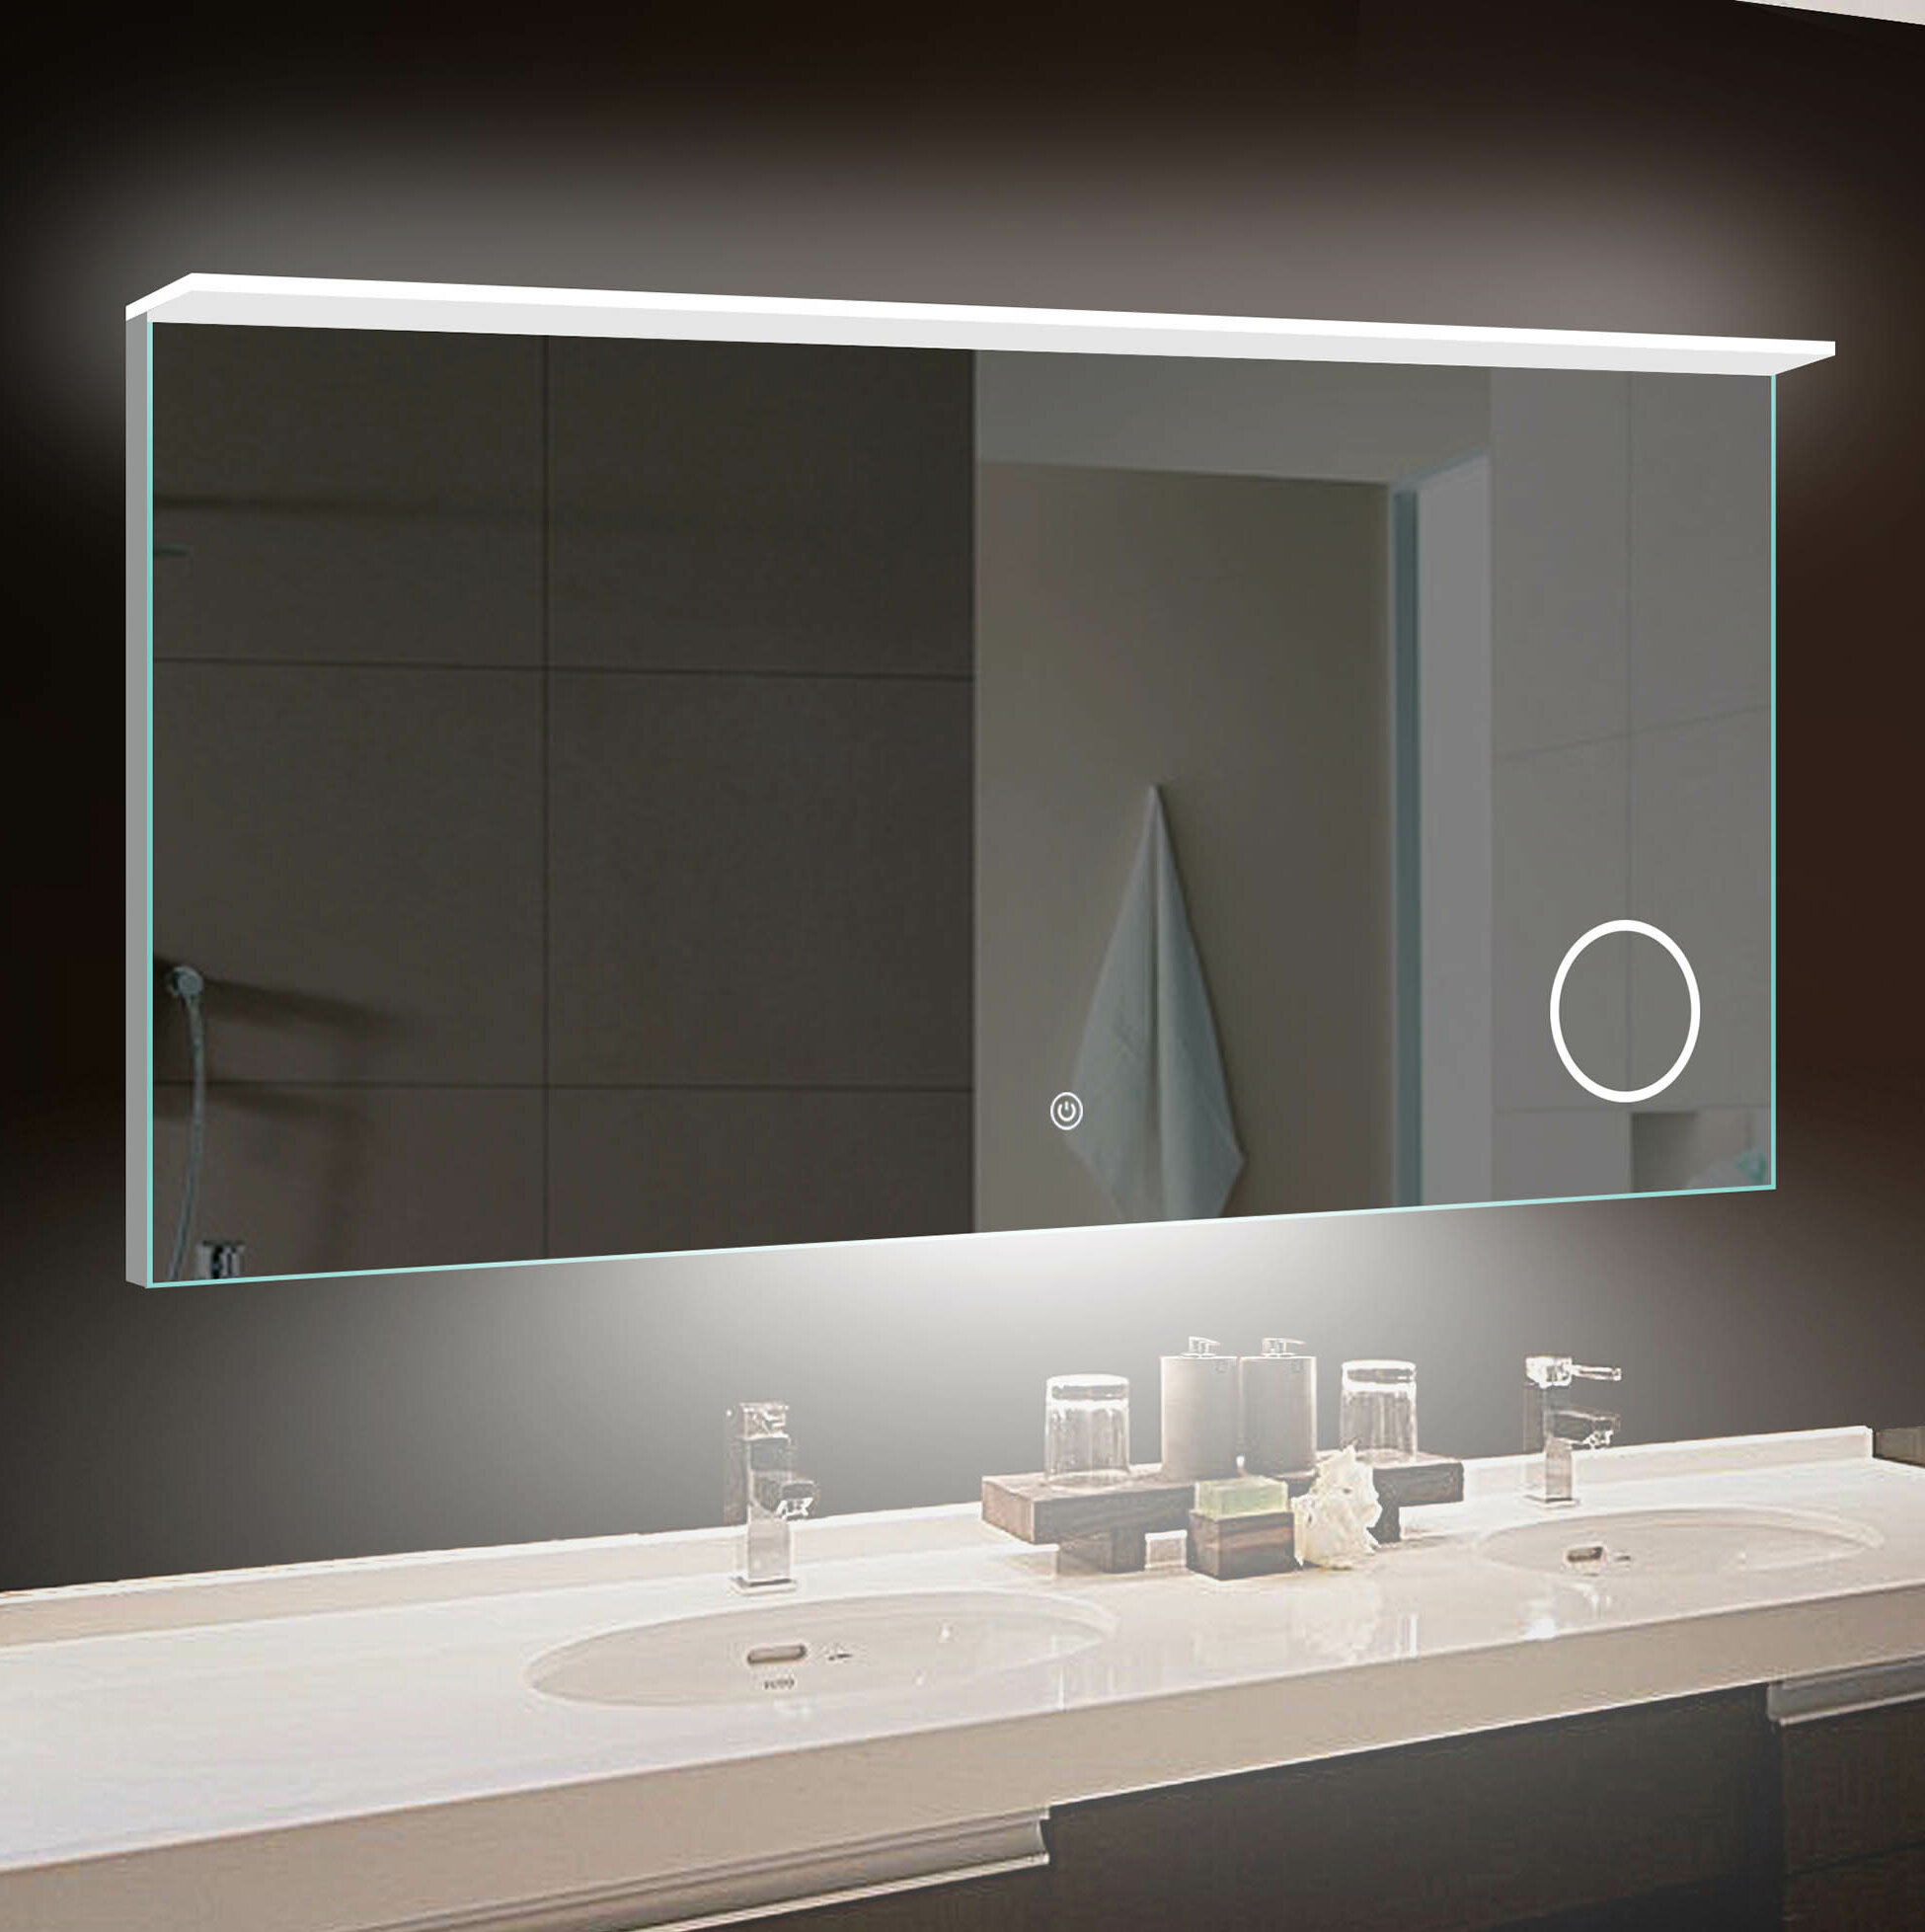 Transit LED Bathroom/Vanity Mirror